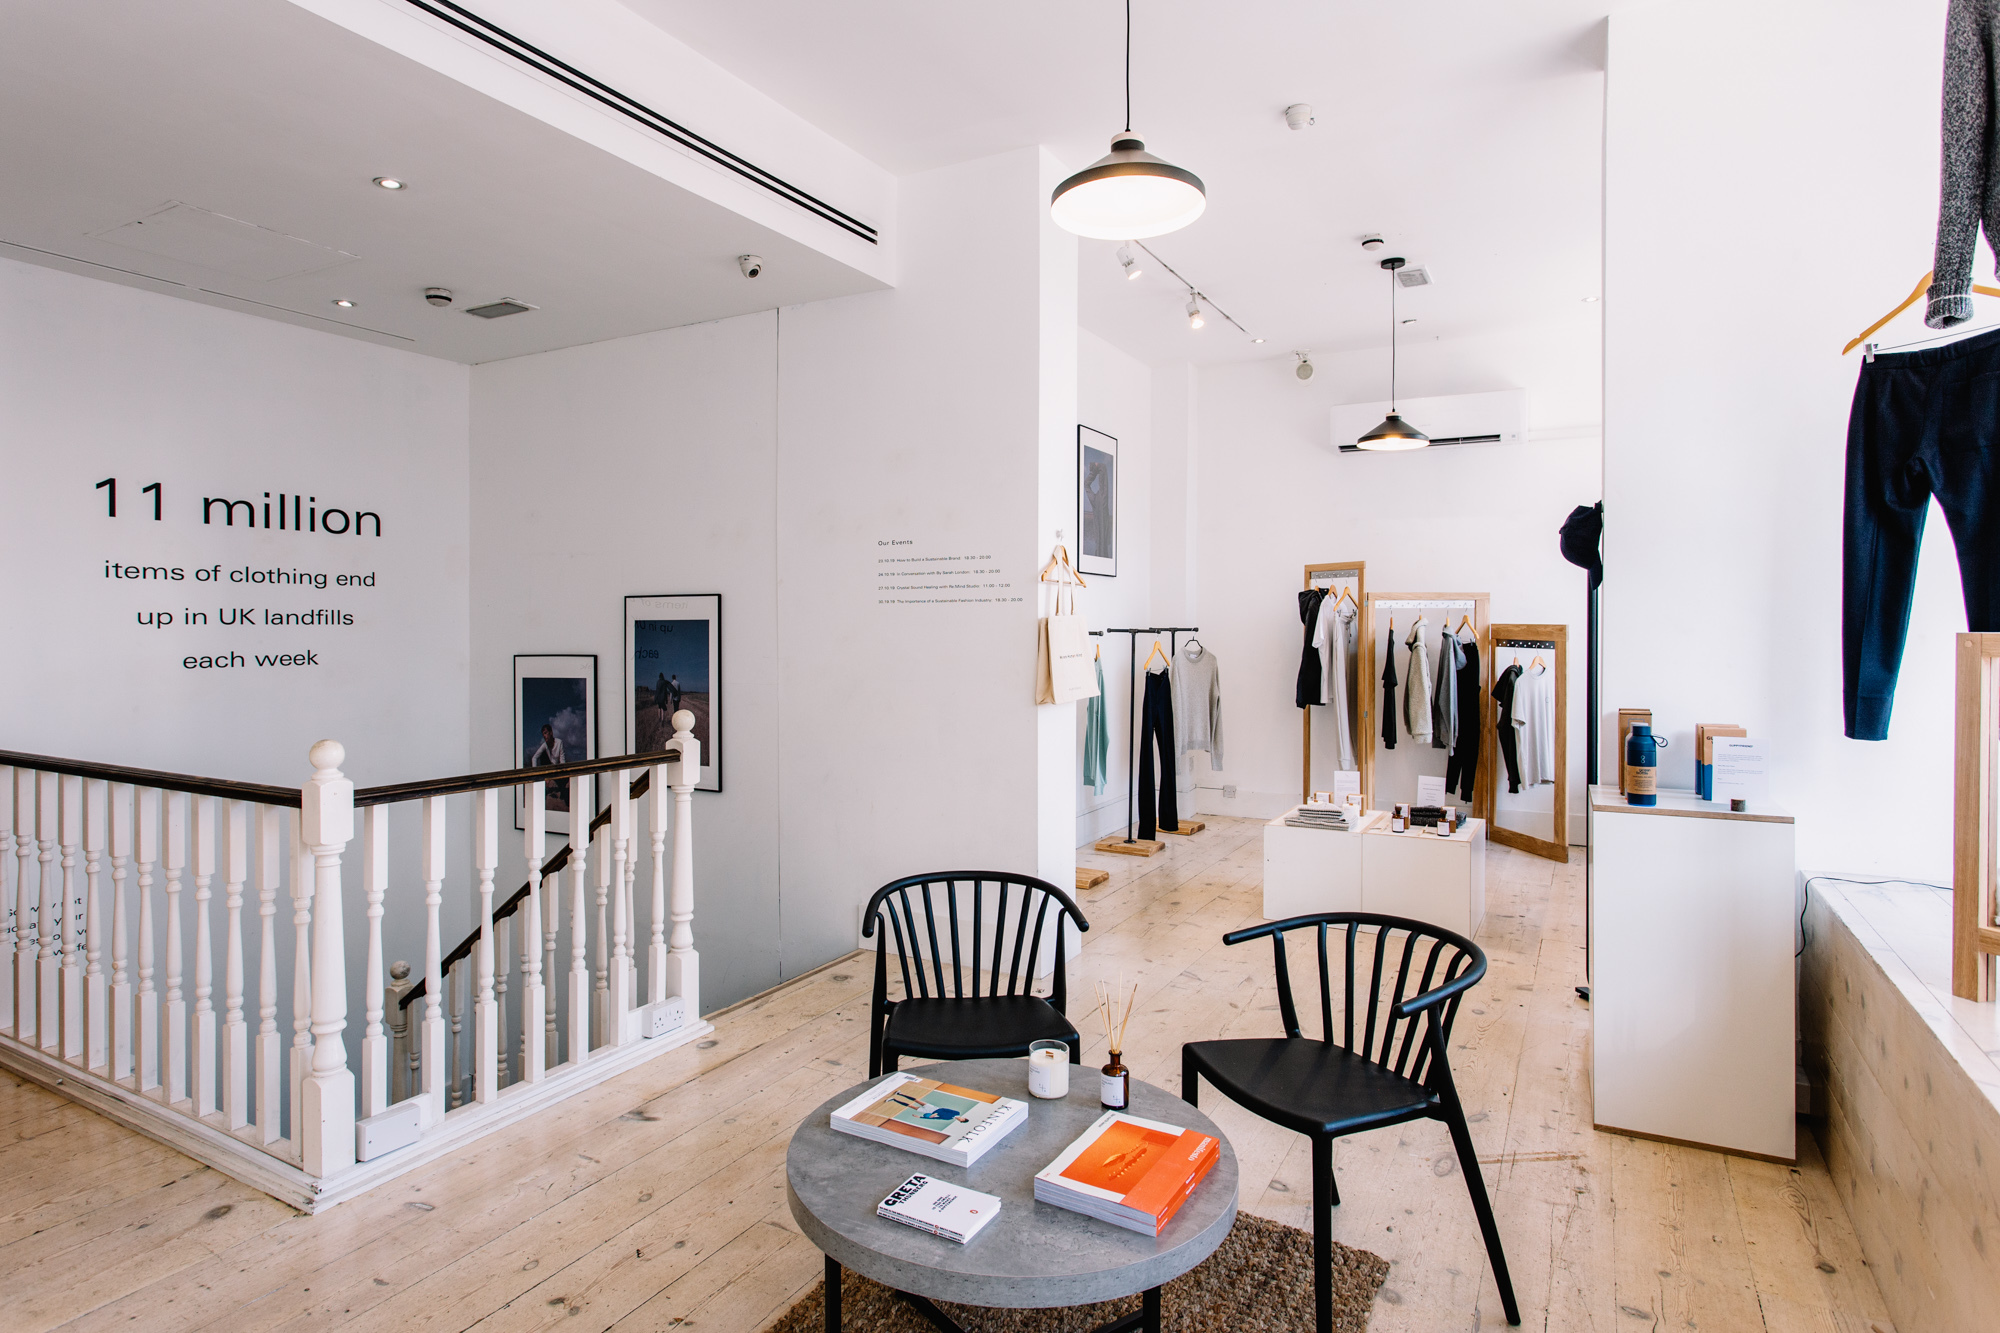 Riley Studio, pop up, how to build a pop up, London pop up, things to see in London, short-term retail,